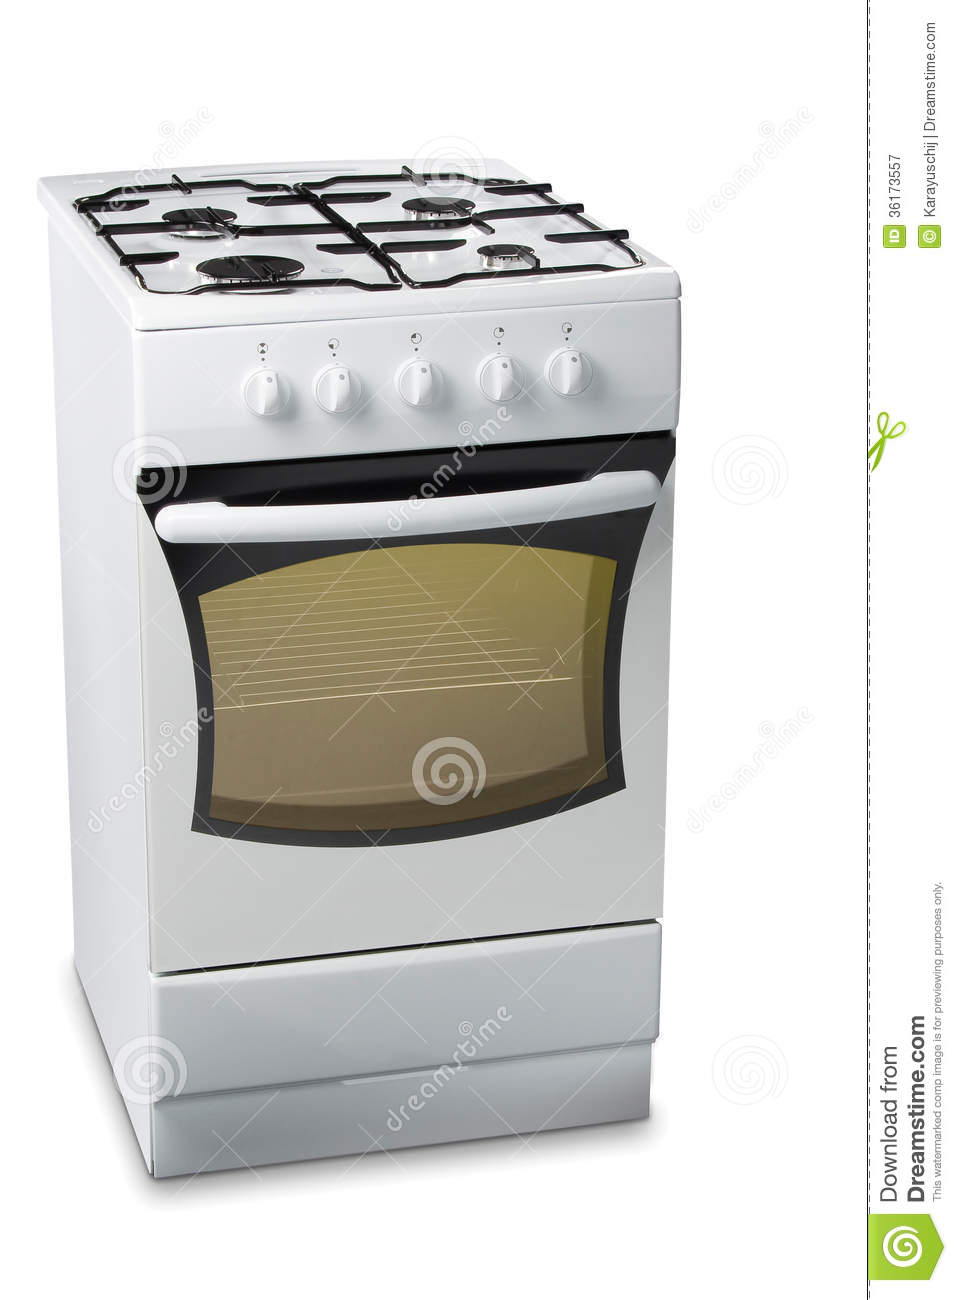 Gas Stove With Light In Oven Royalty Free Stock